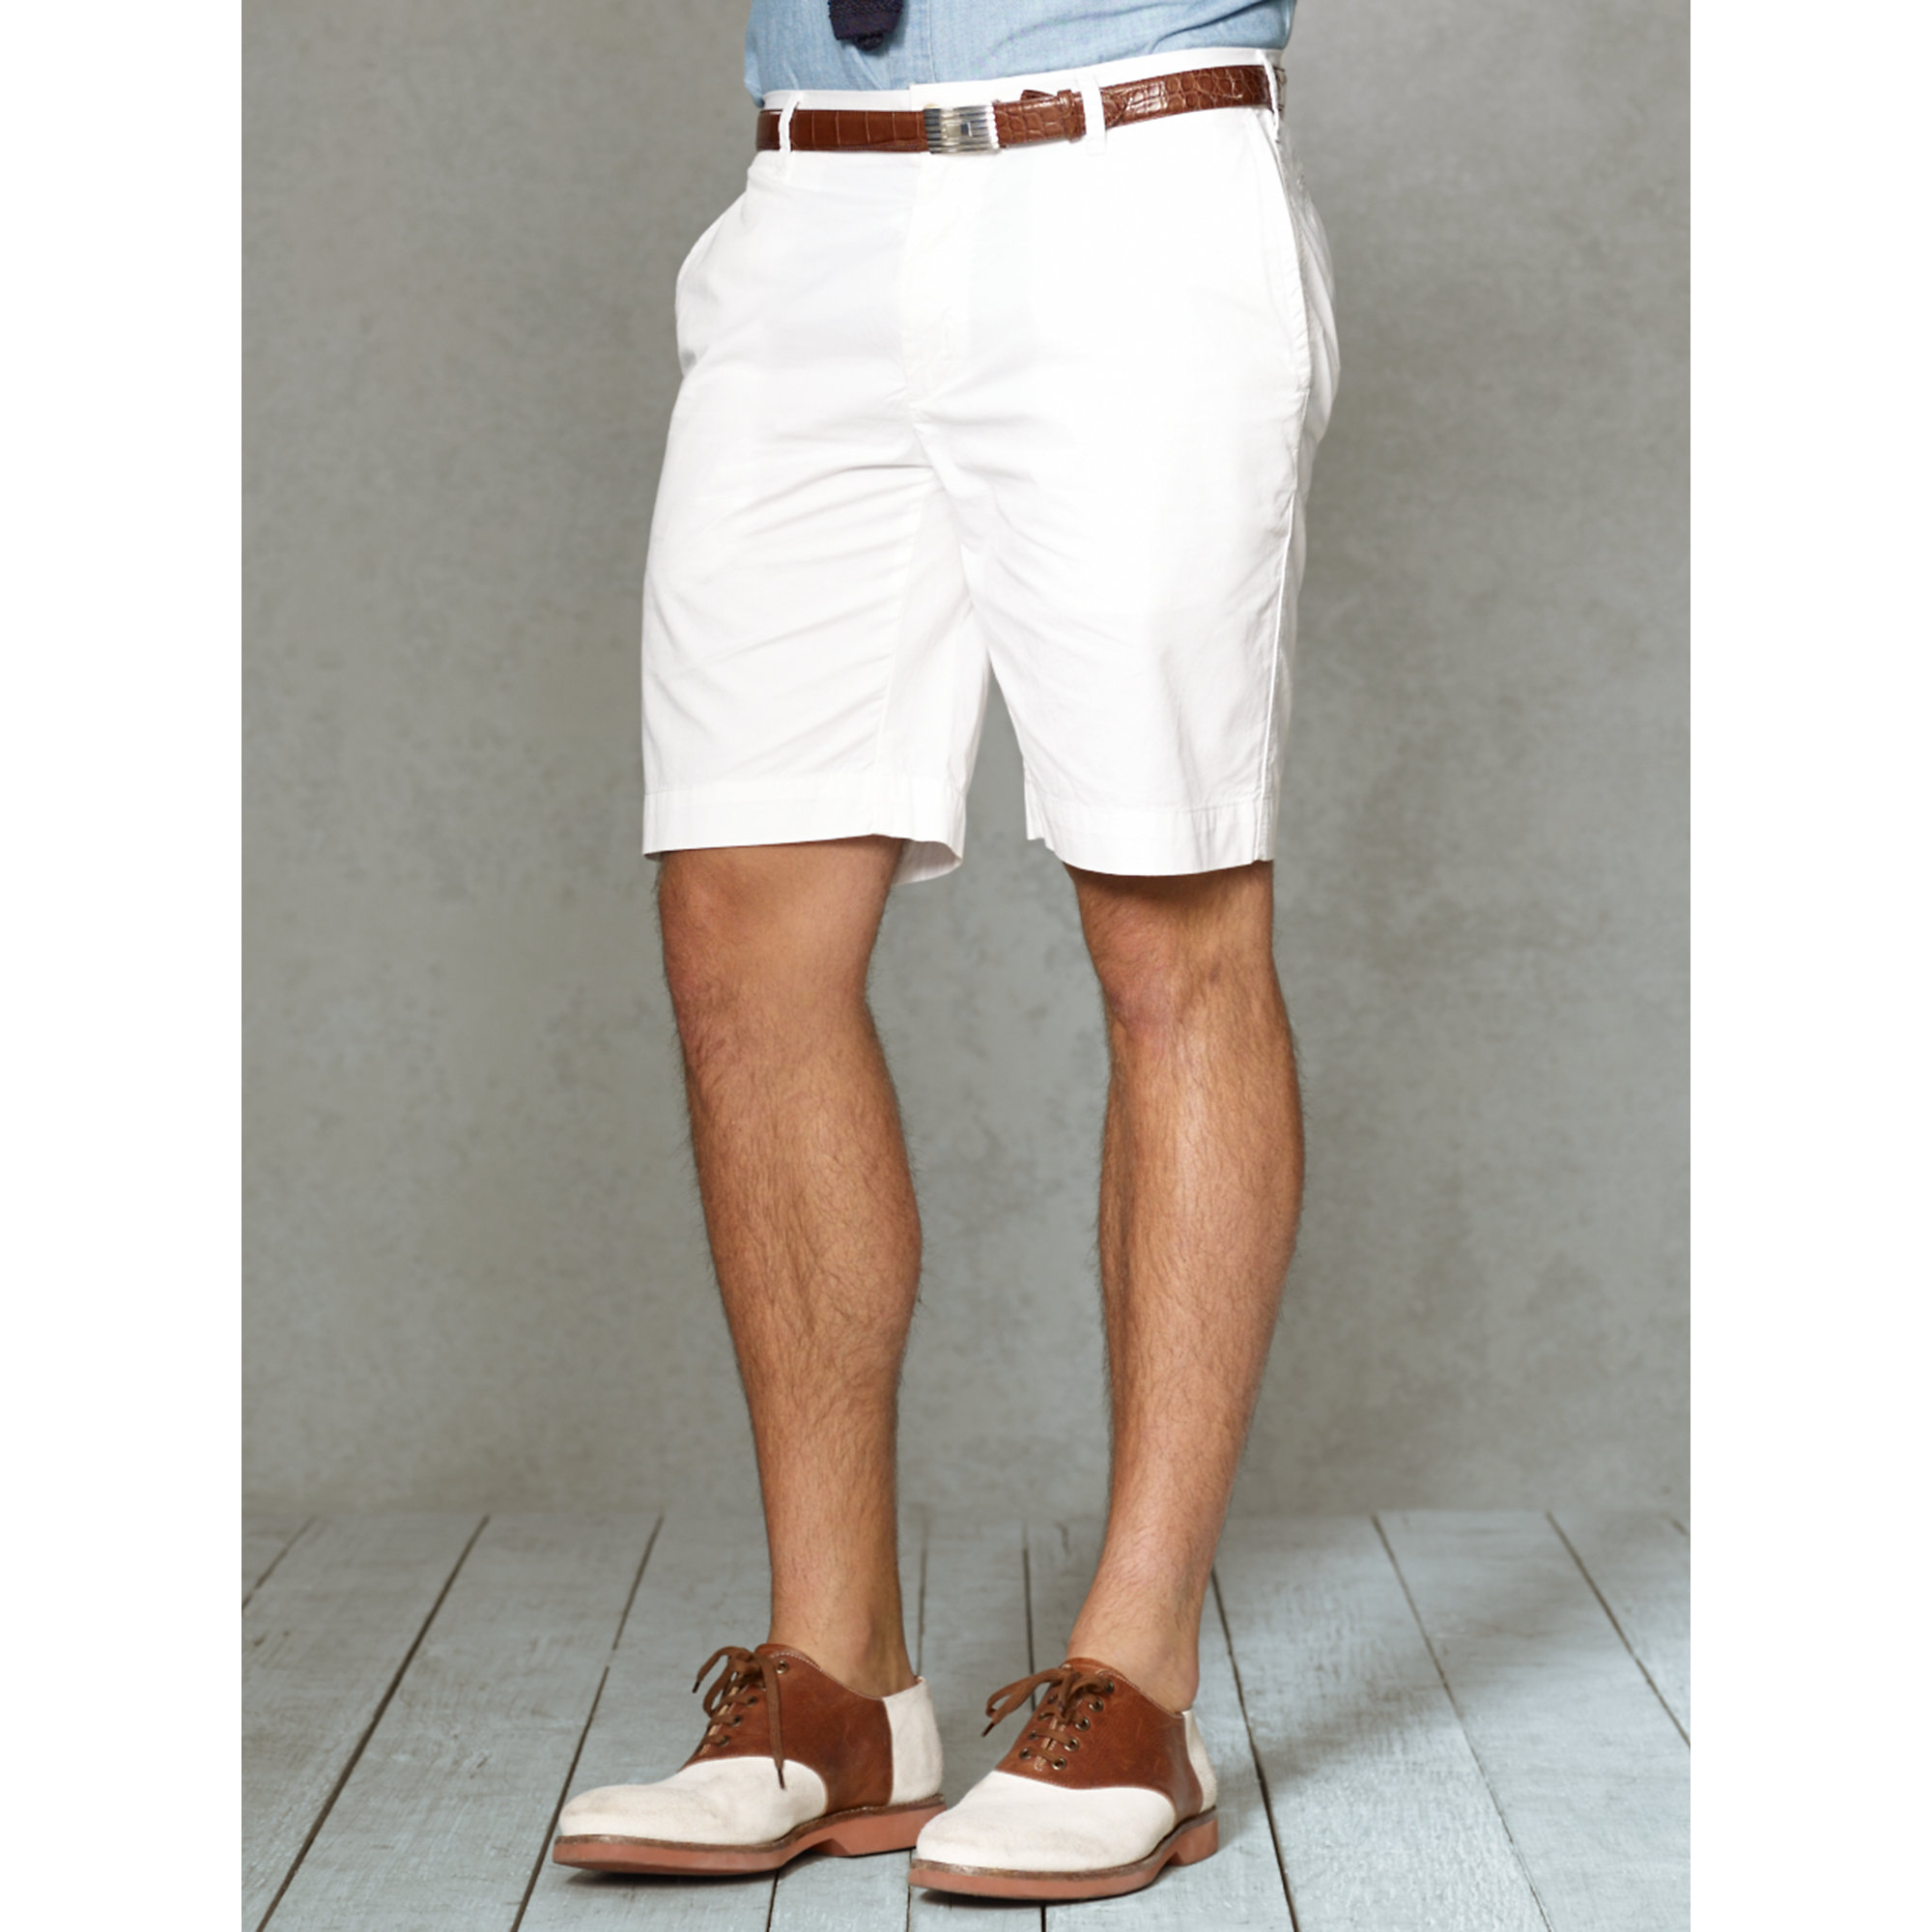 56aaa8cad Polo Ralph Lauren Classic Fit Newport Short in White for Men - Lyst